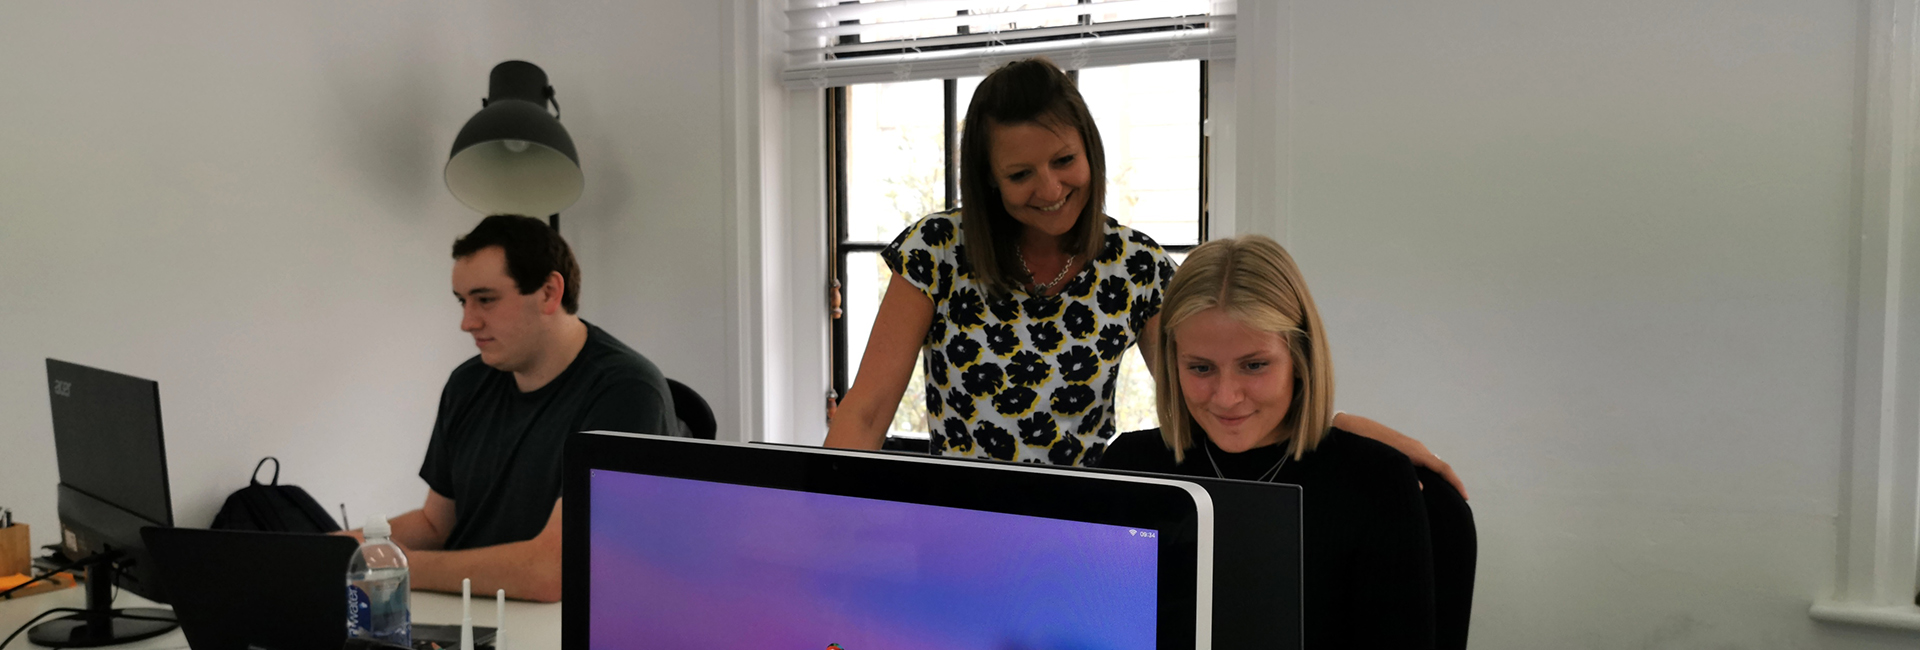 Digital Storm welcomes Olivia to the team!